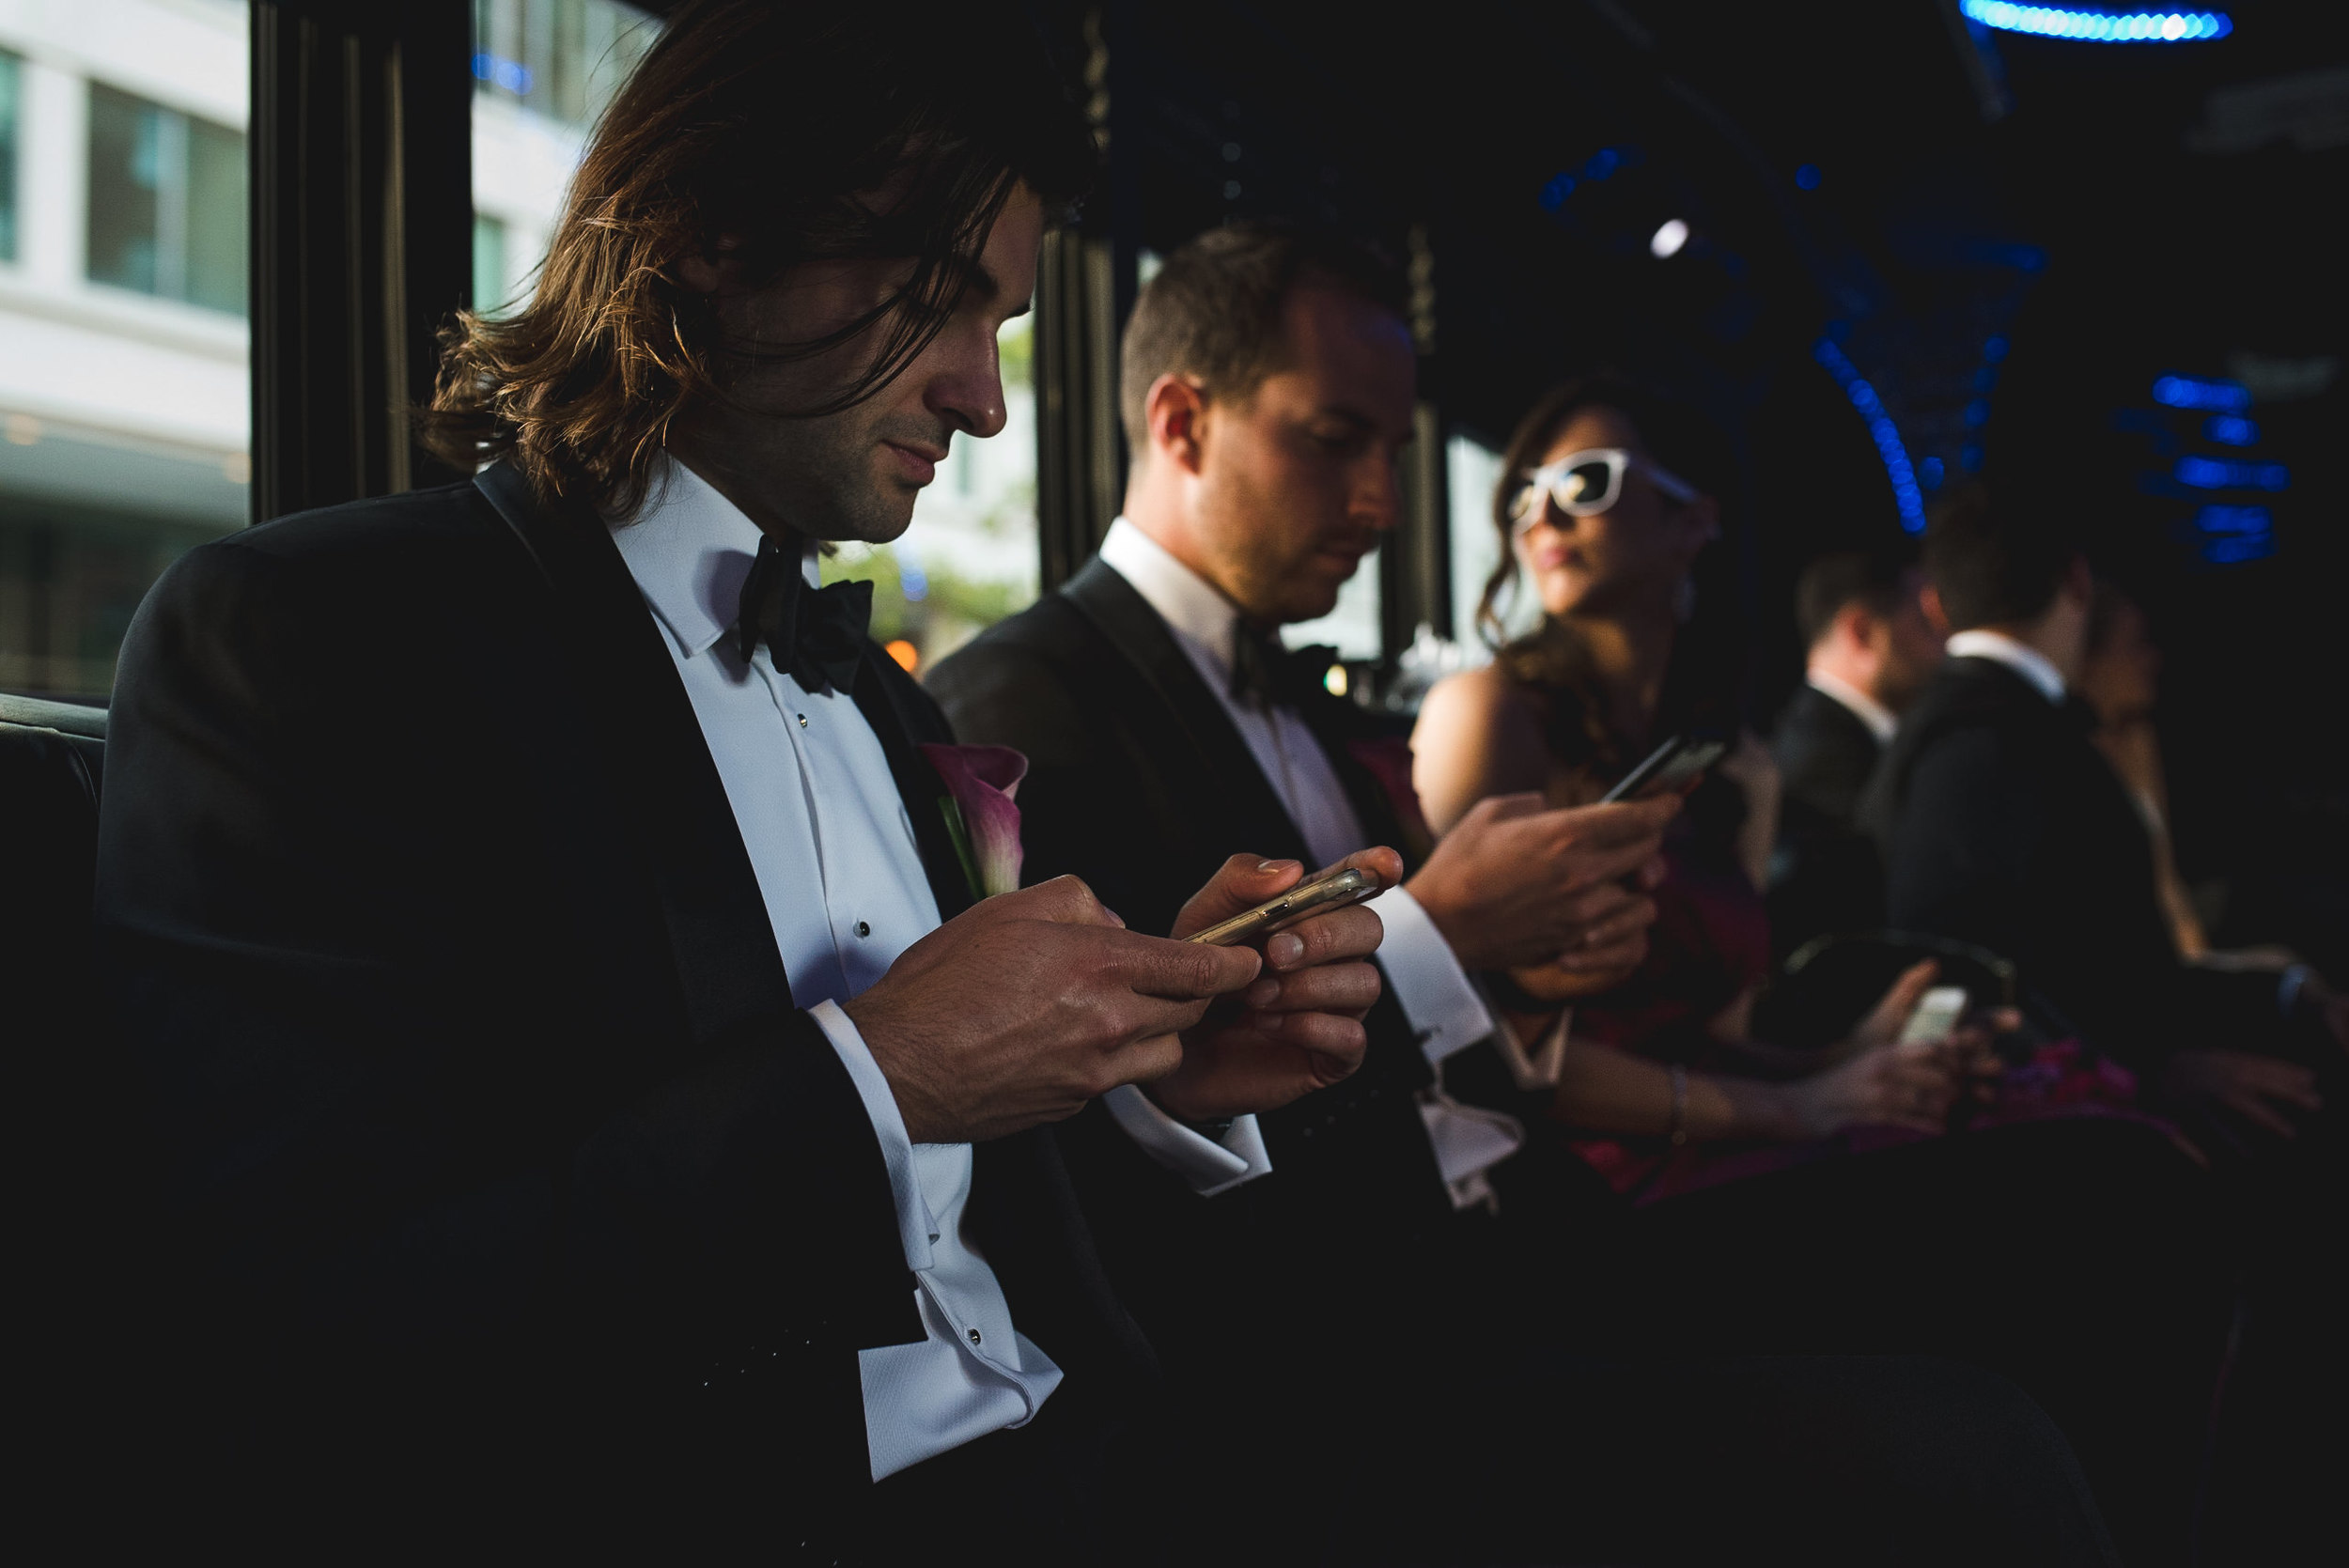 Wedding at National Museum of Women in the Arts by Photographer Mantas Kubilinskas-17.jpg